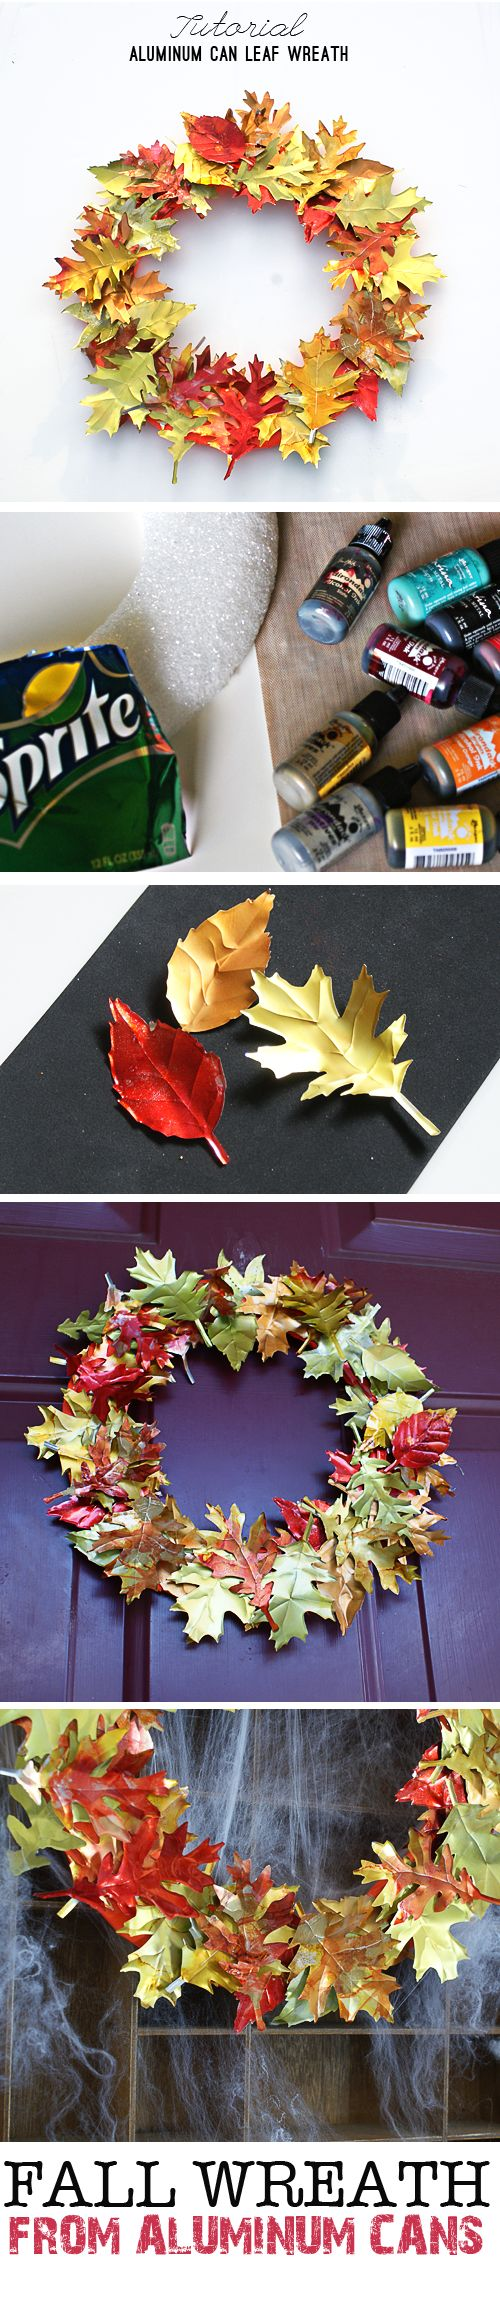 Aluminum Can Leaf Wreath Tutorial at savedbylovecreations.com #fall #wreath #upcycle #repurpose #recycledCrafts #sizzix #TimHoltz